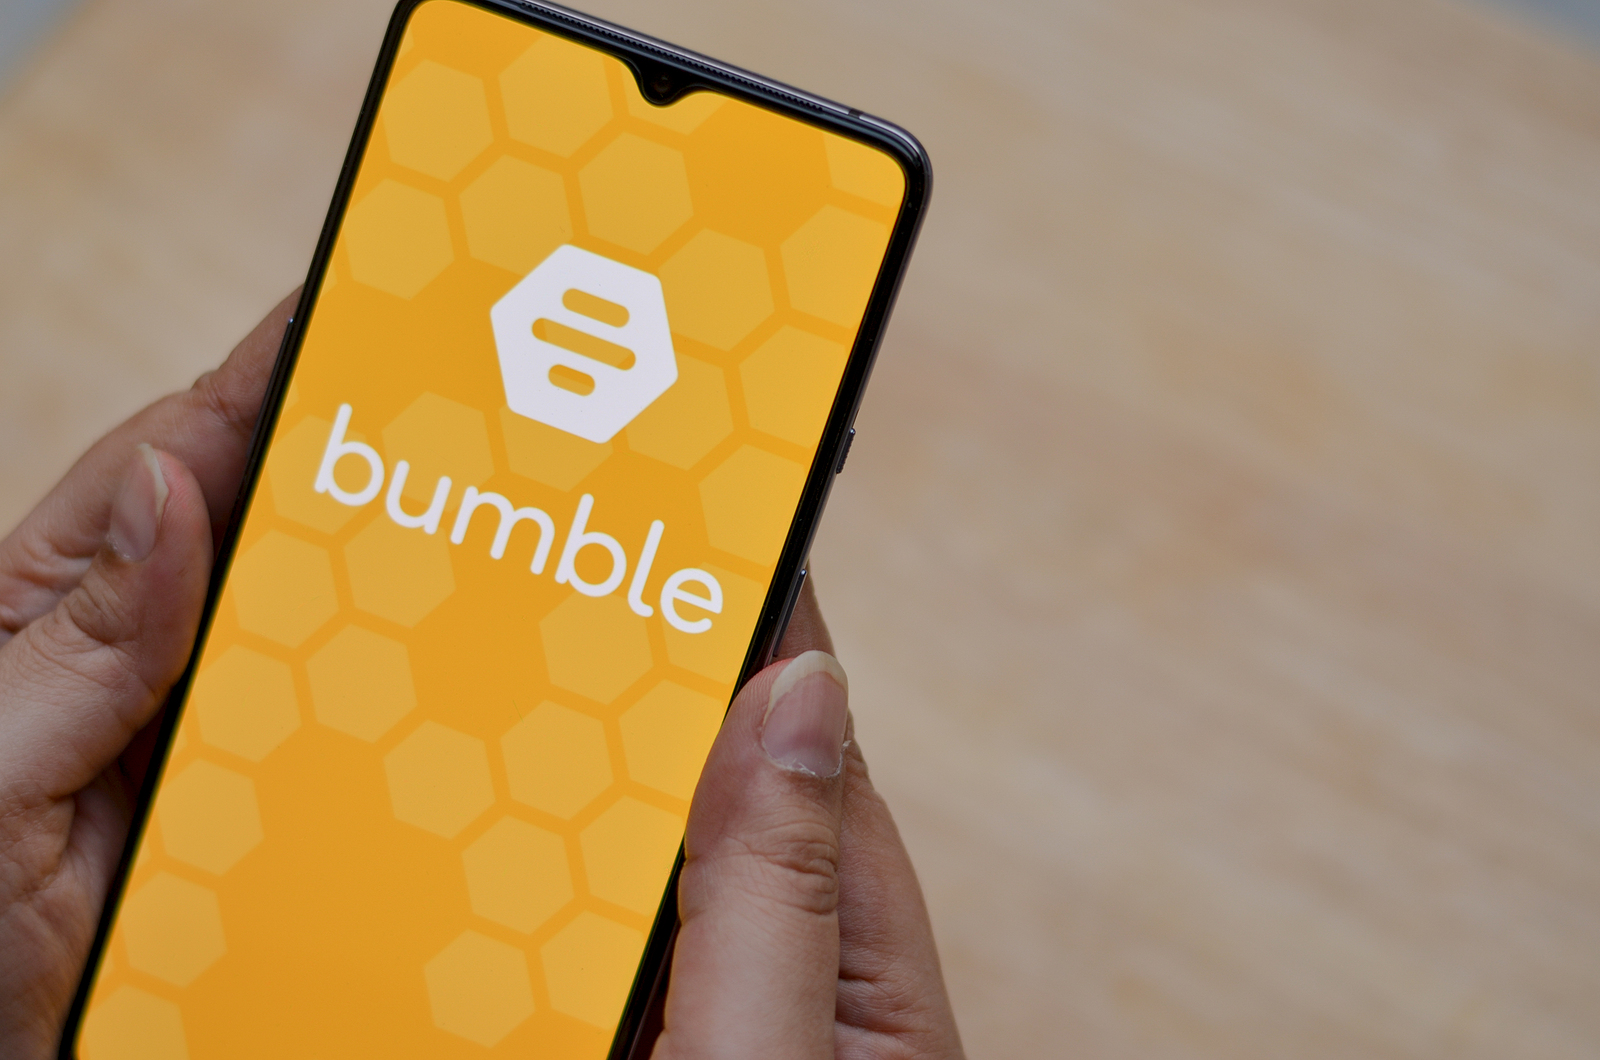 Bumble potential IPO news and expectations